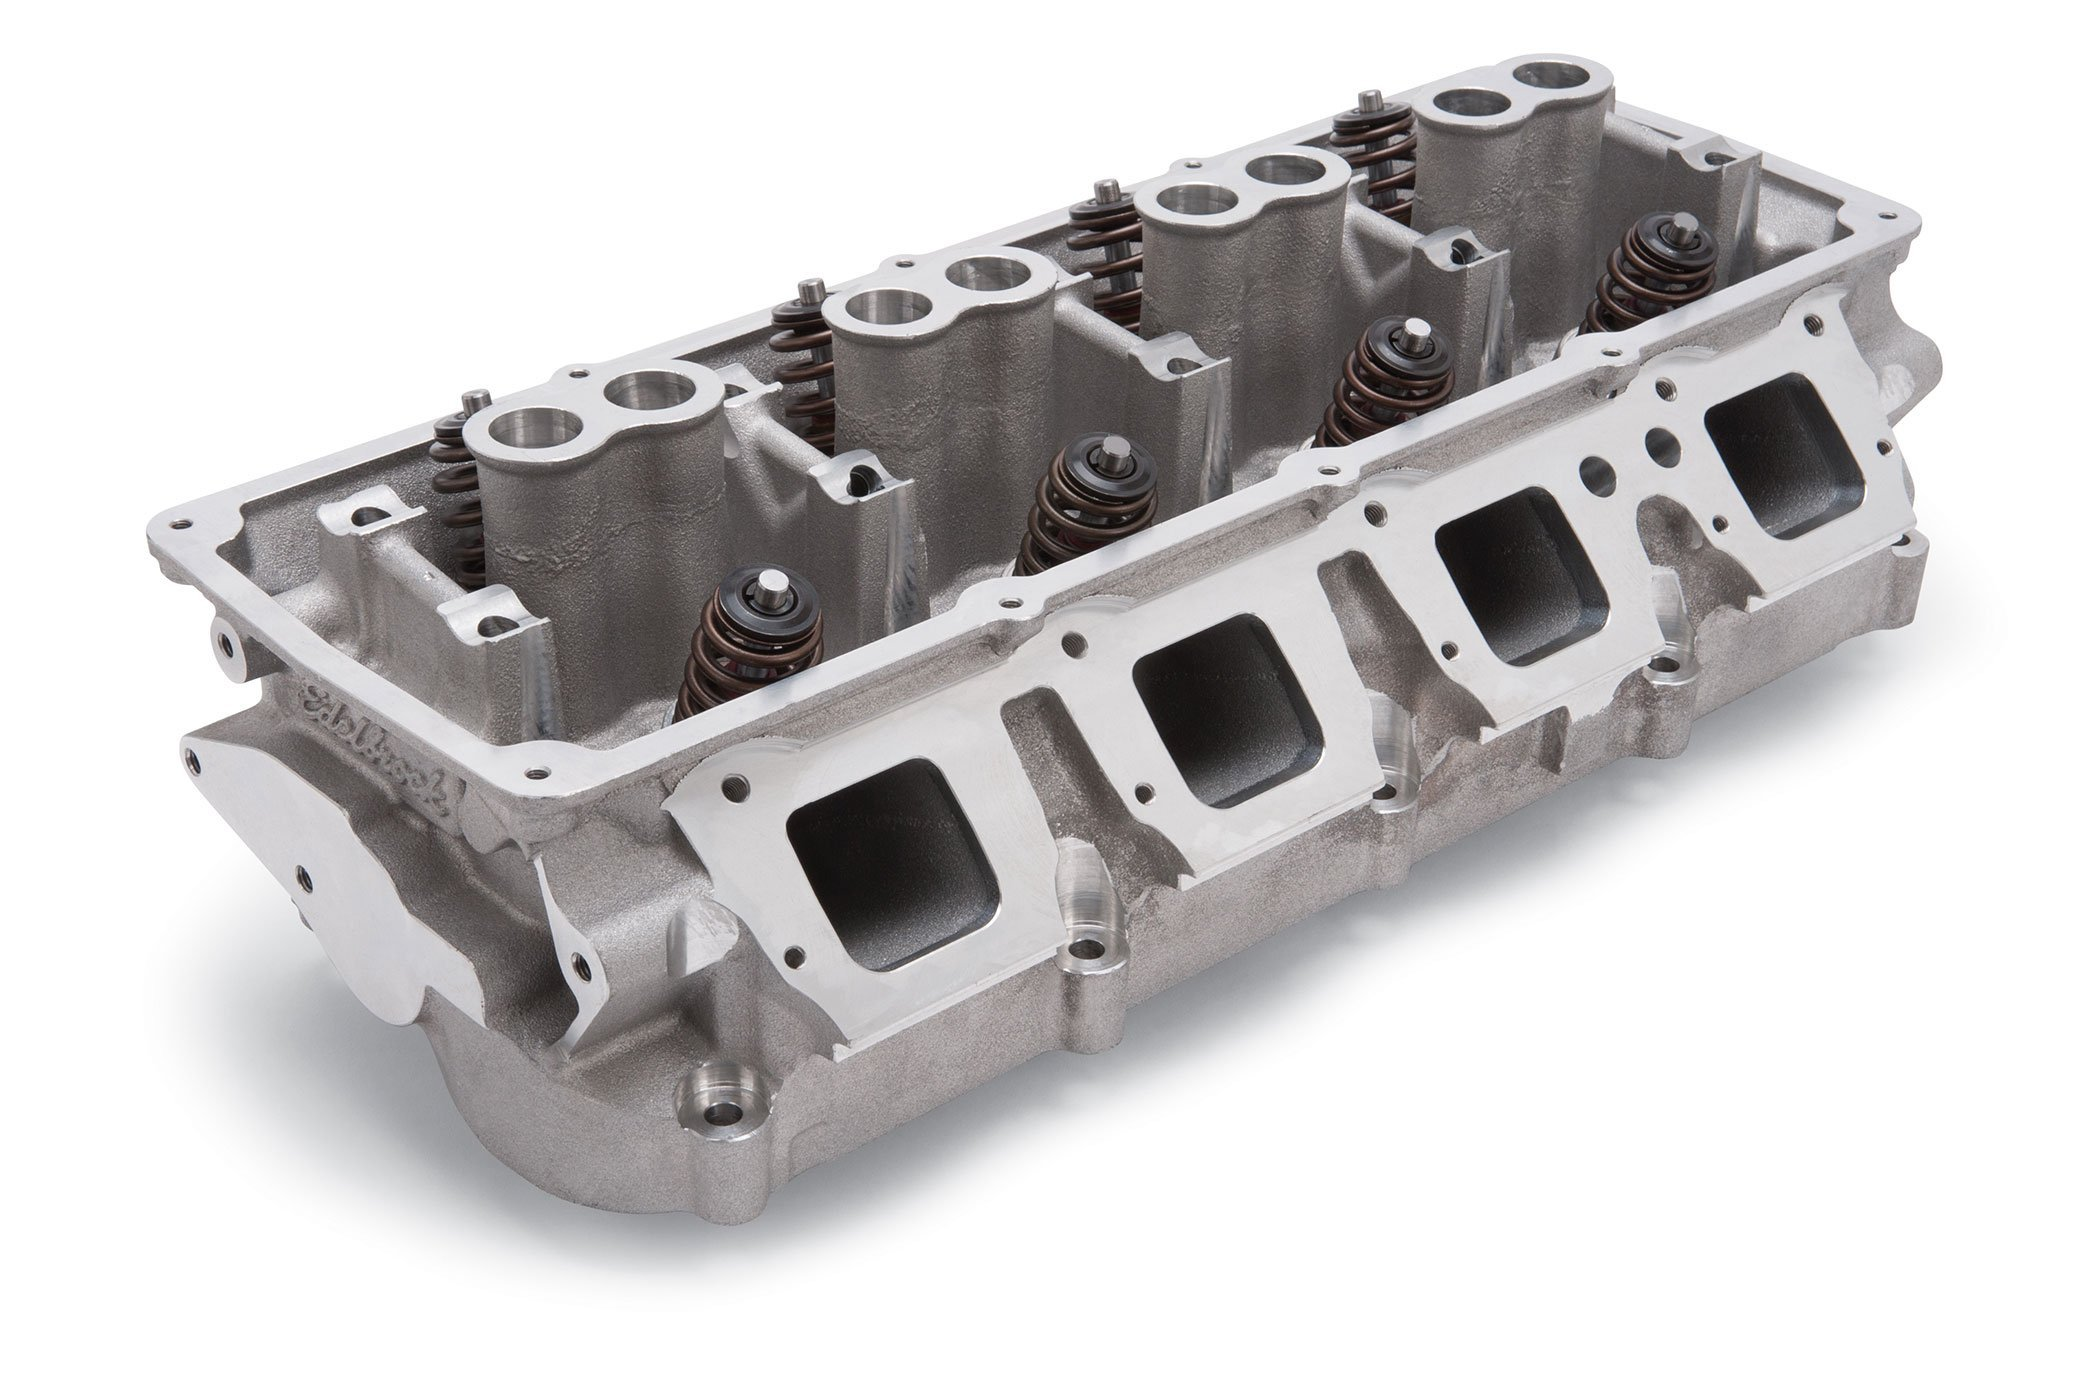 new cylinder head intake manifold for gen iii hemi from. Black Bedroom Furniture Sets. Home Design Ideas